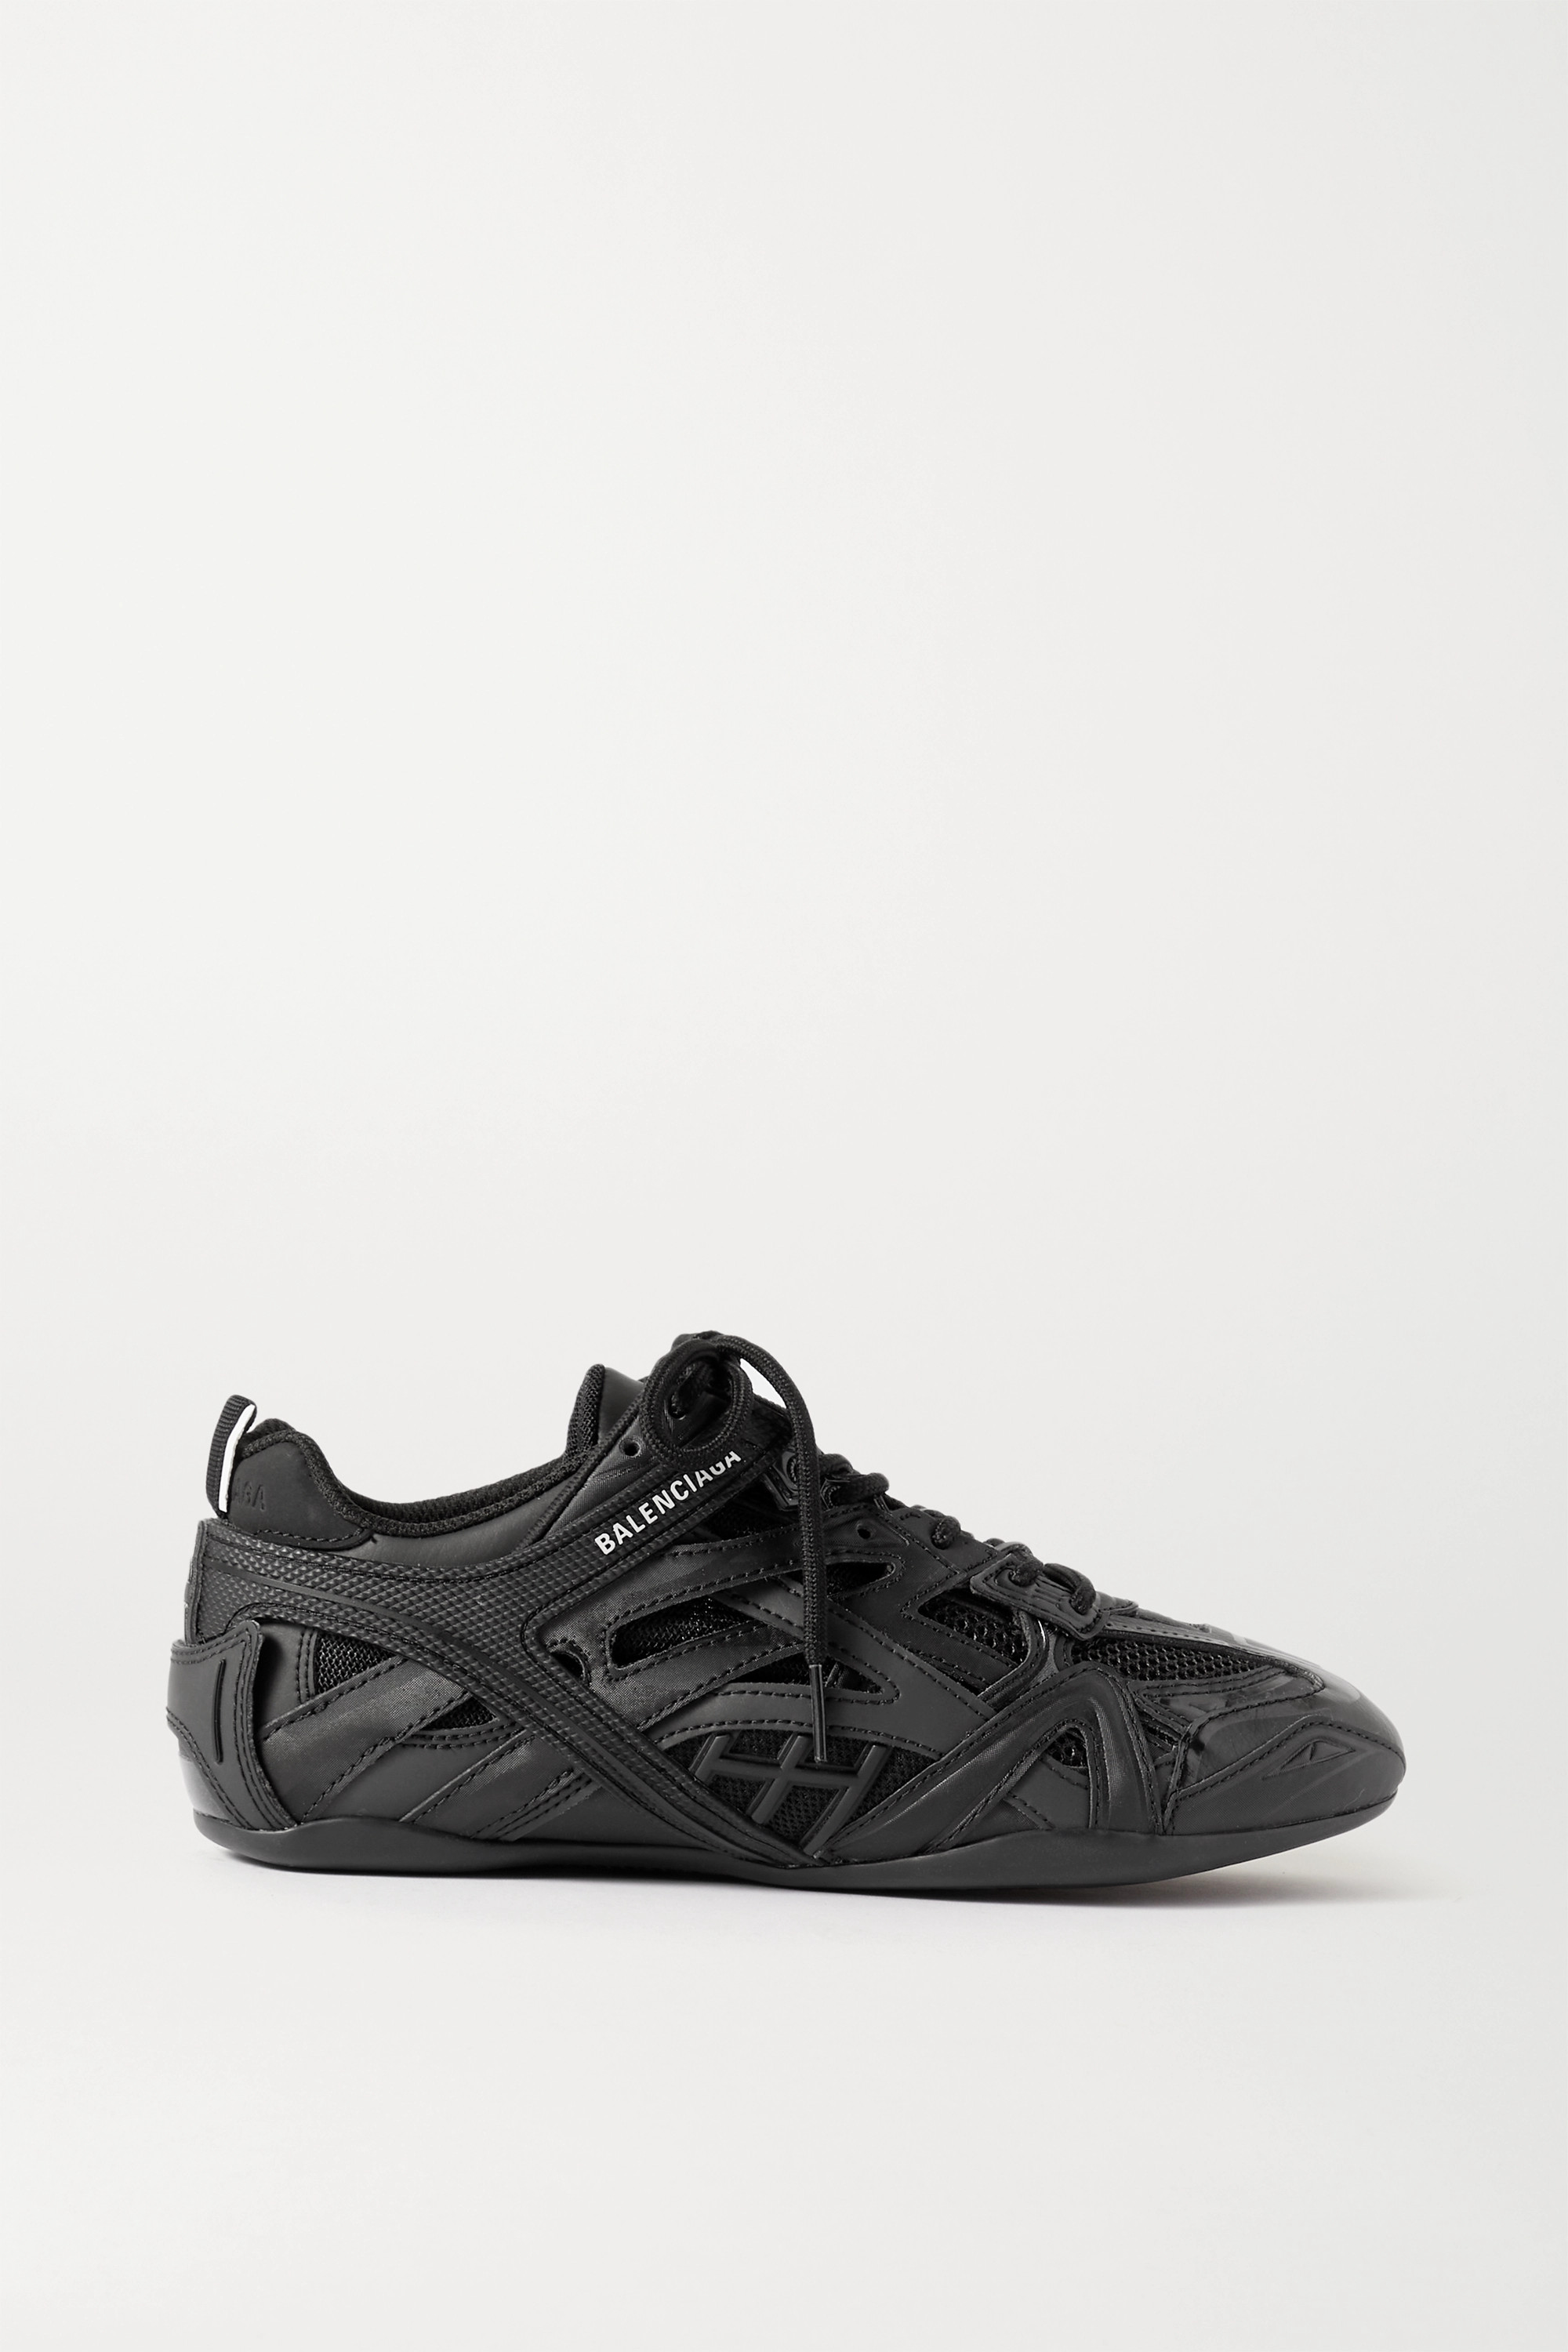 BALENCIAGA Drive logo-print leather, rubber, mesh and suede sneakers